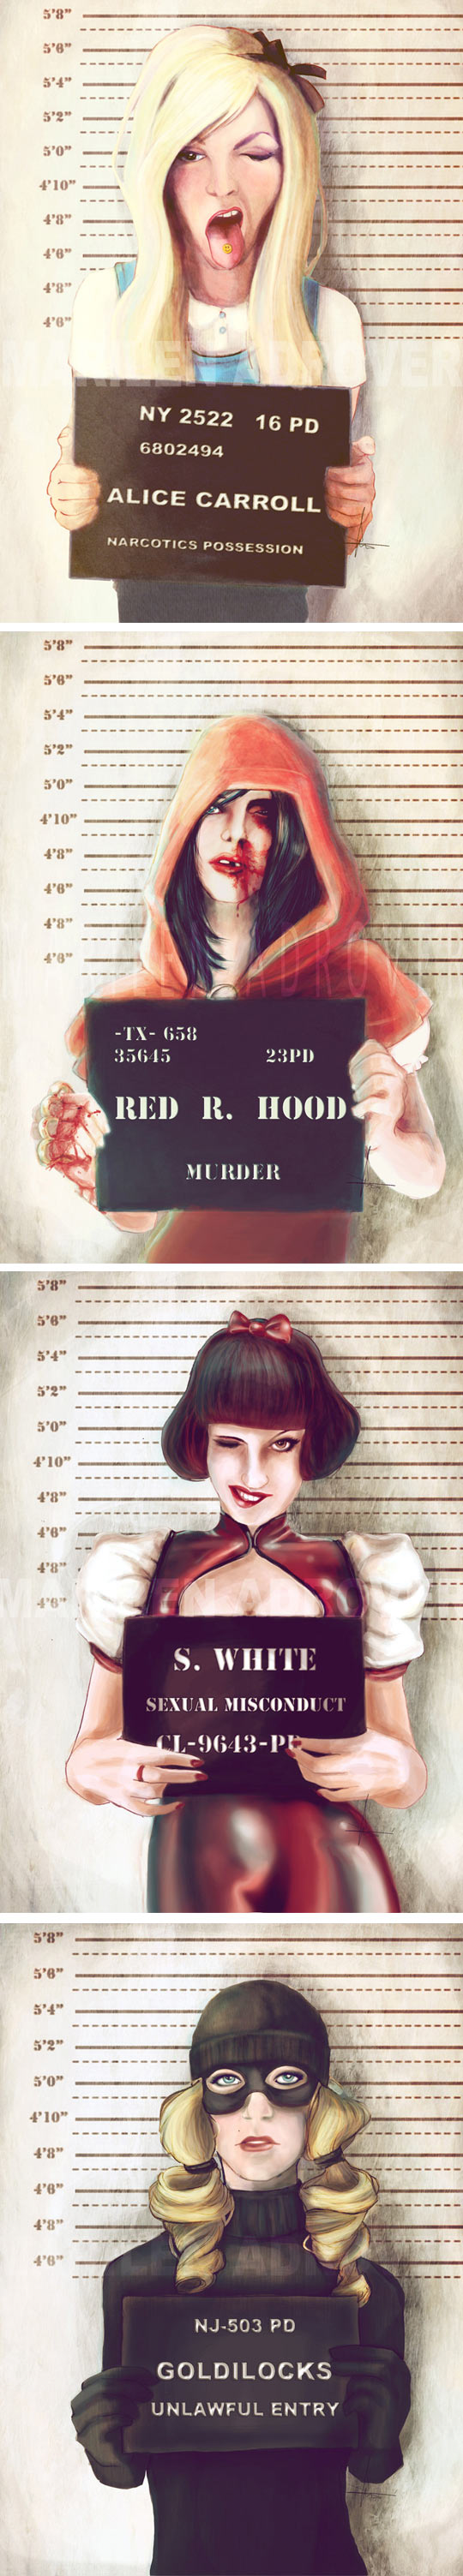 funny-Disney-characters-prison-sign